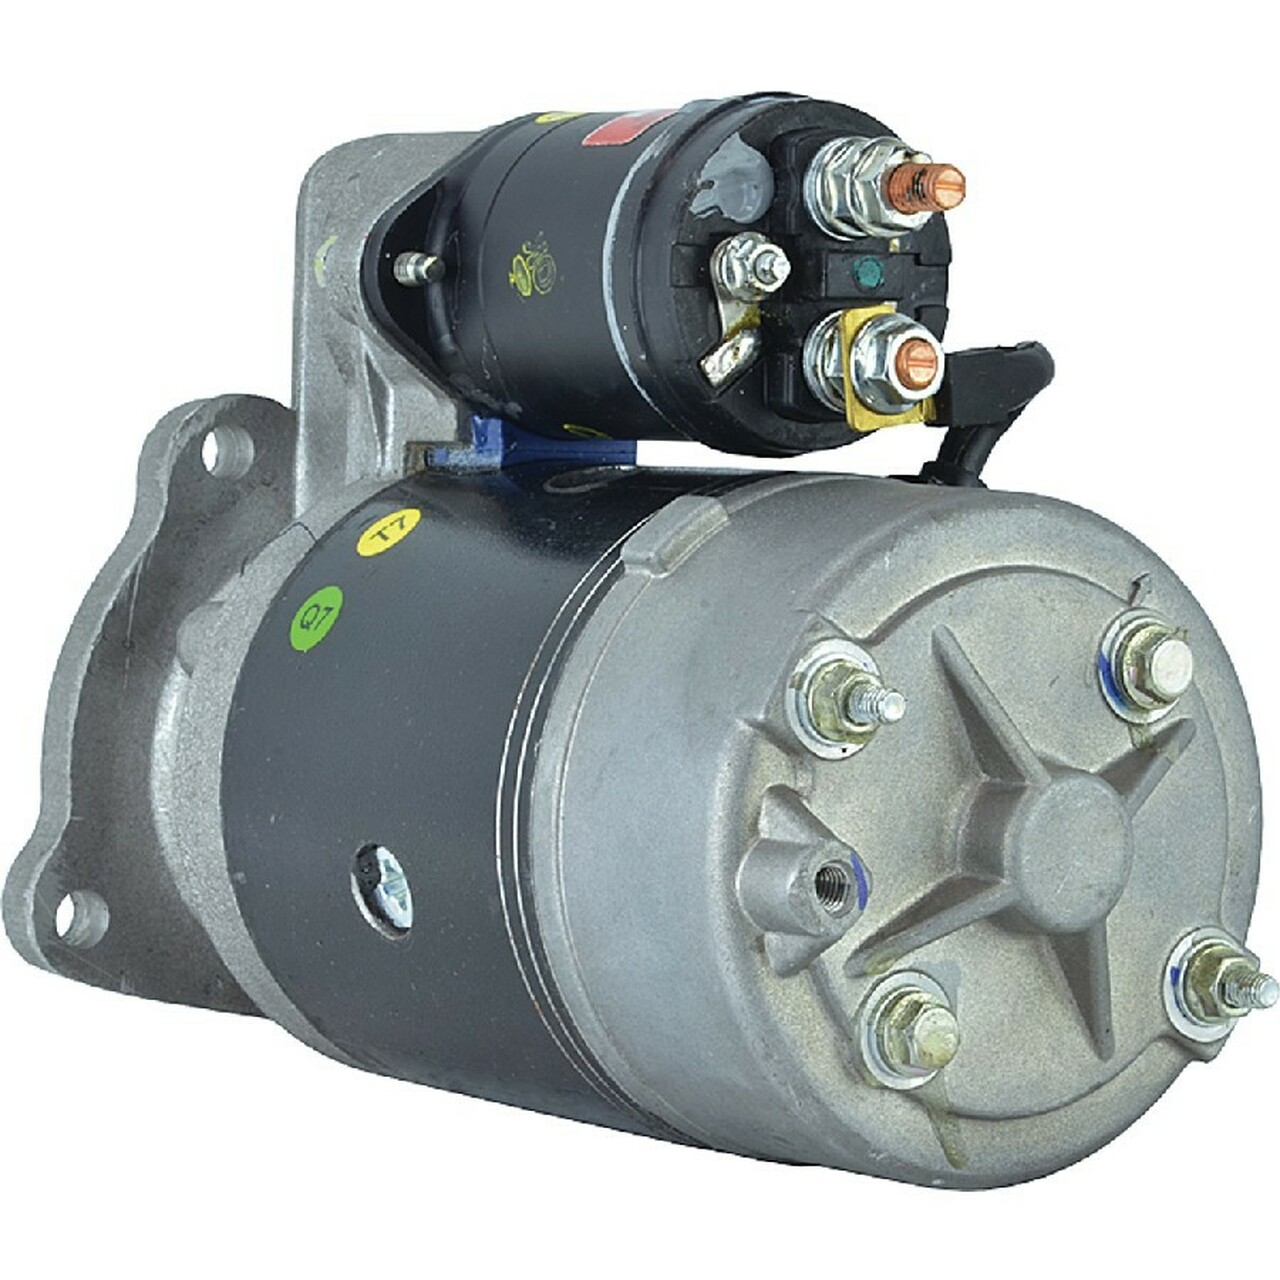 mPower 75 8560 4WD 410-30053 New Industrial Starter for Mahindra 4550 2WD